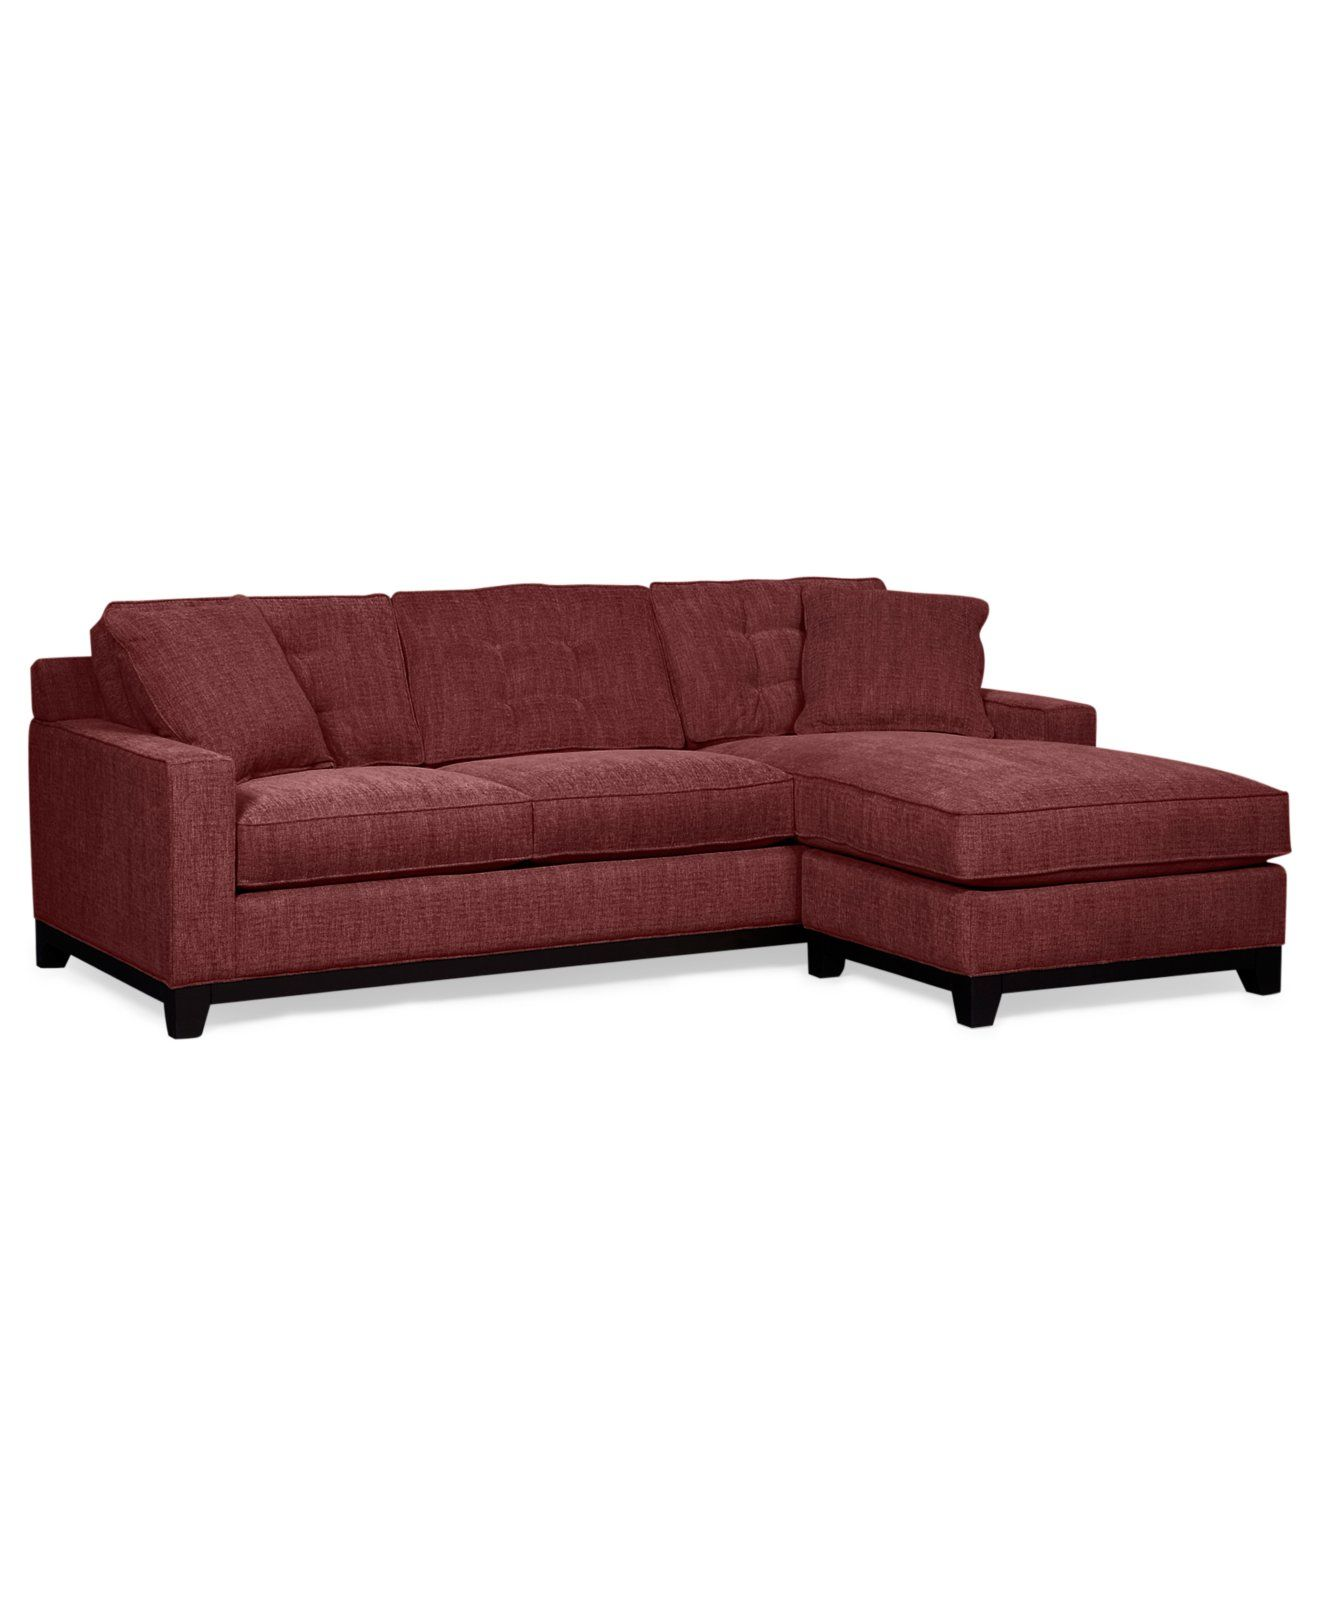 clarke fabric queen sleeper sofa bed sofas made 2 piece sectional custom colors furniture macy s 1200